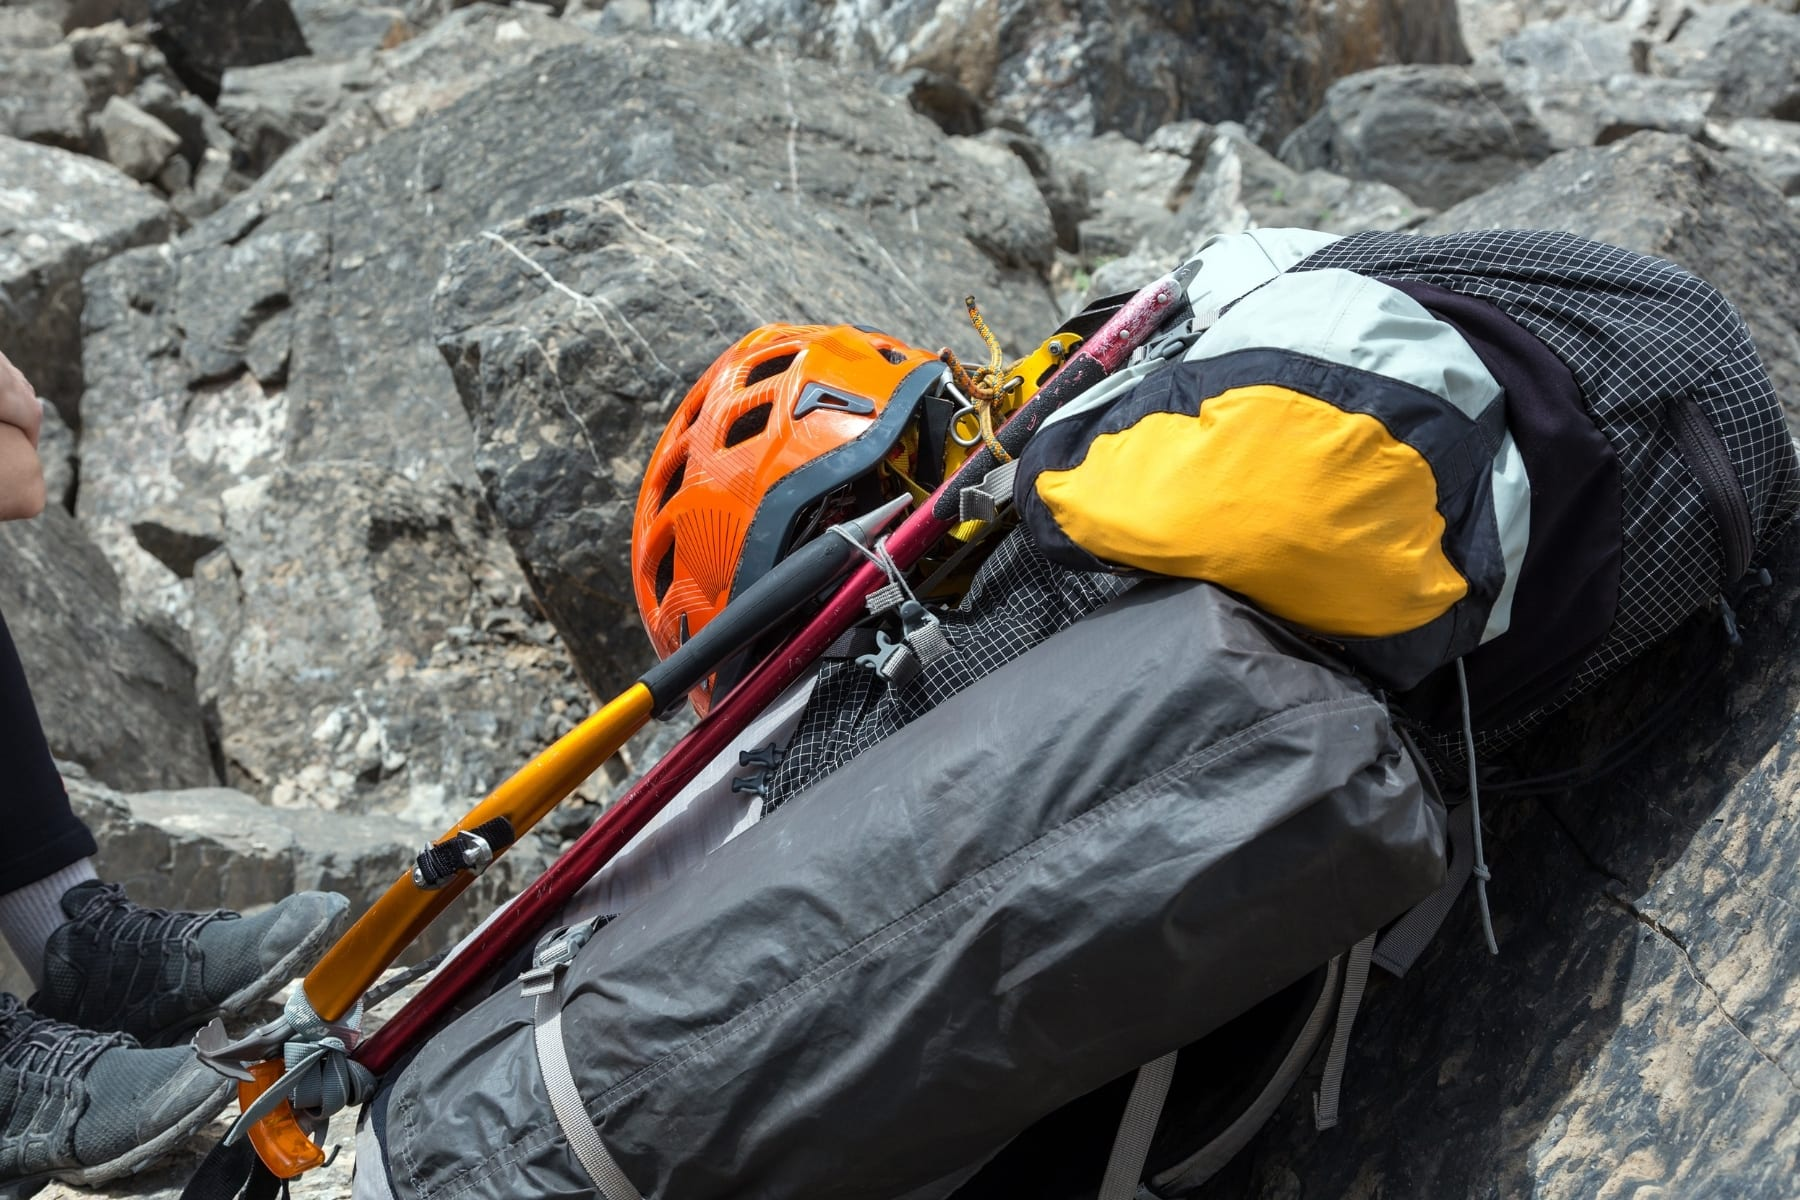 Backpacking gear